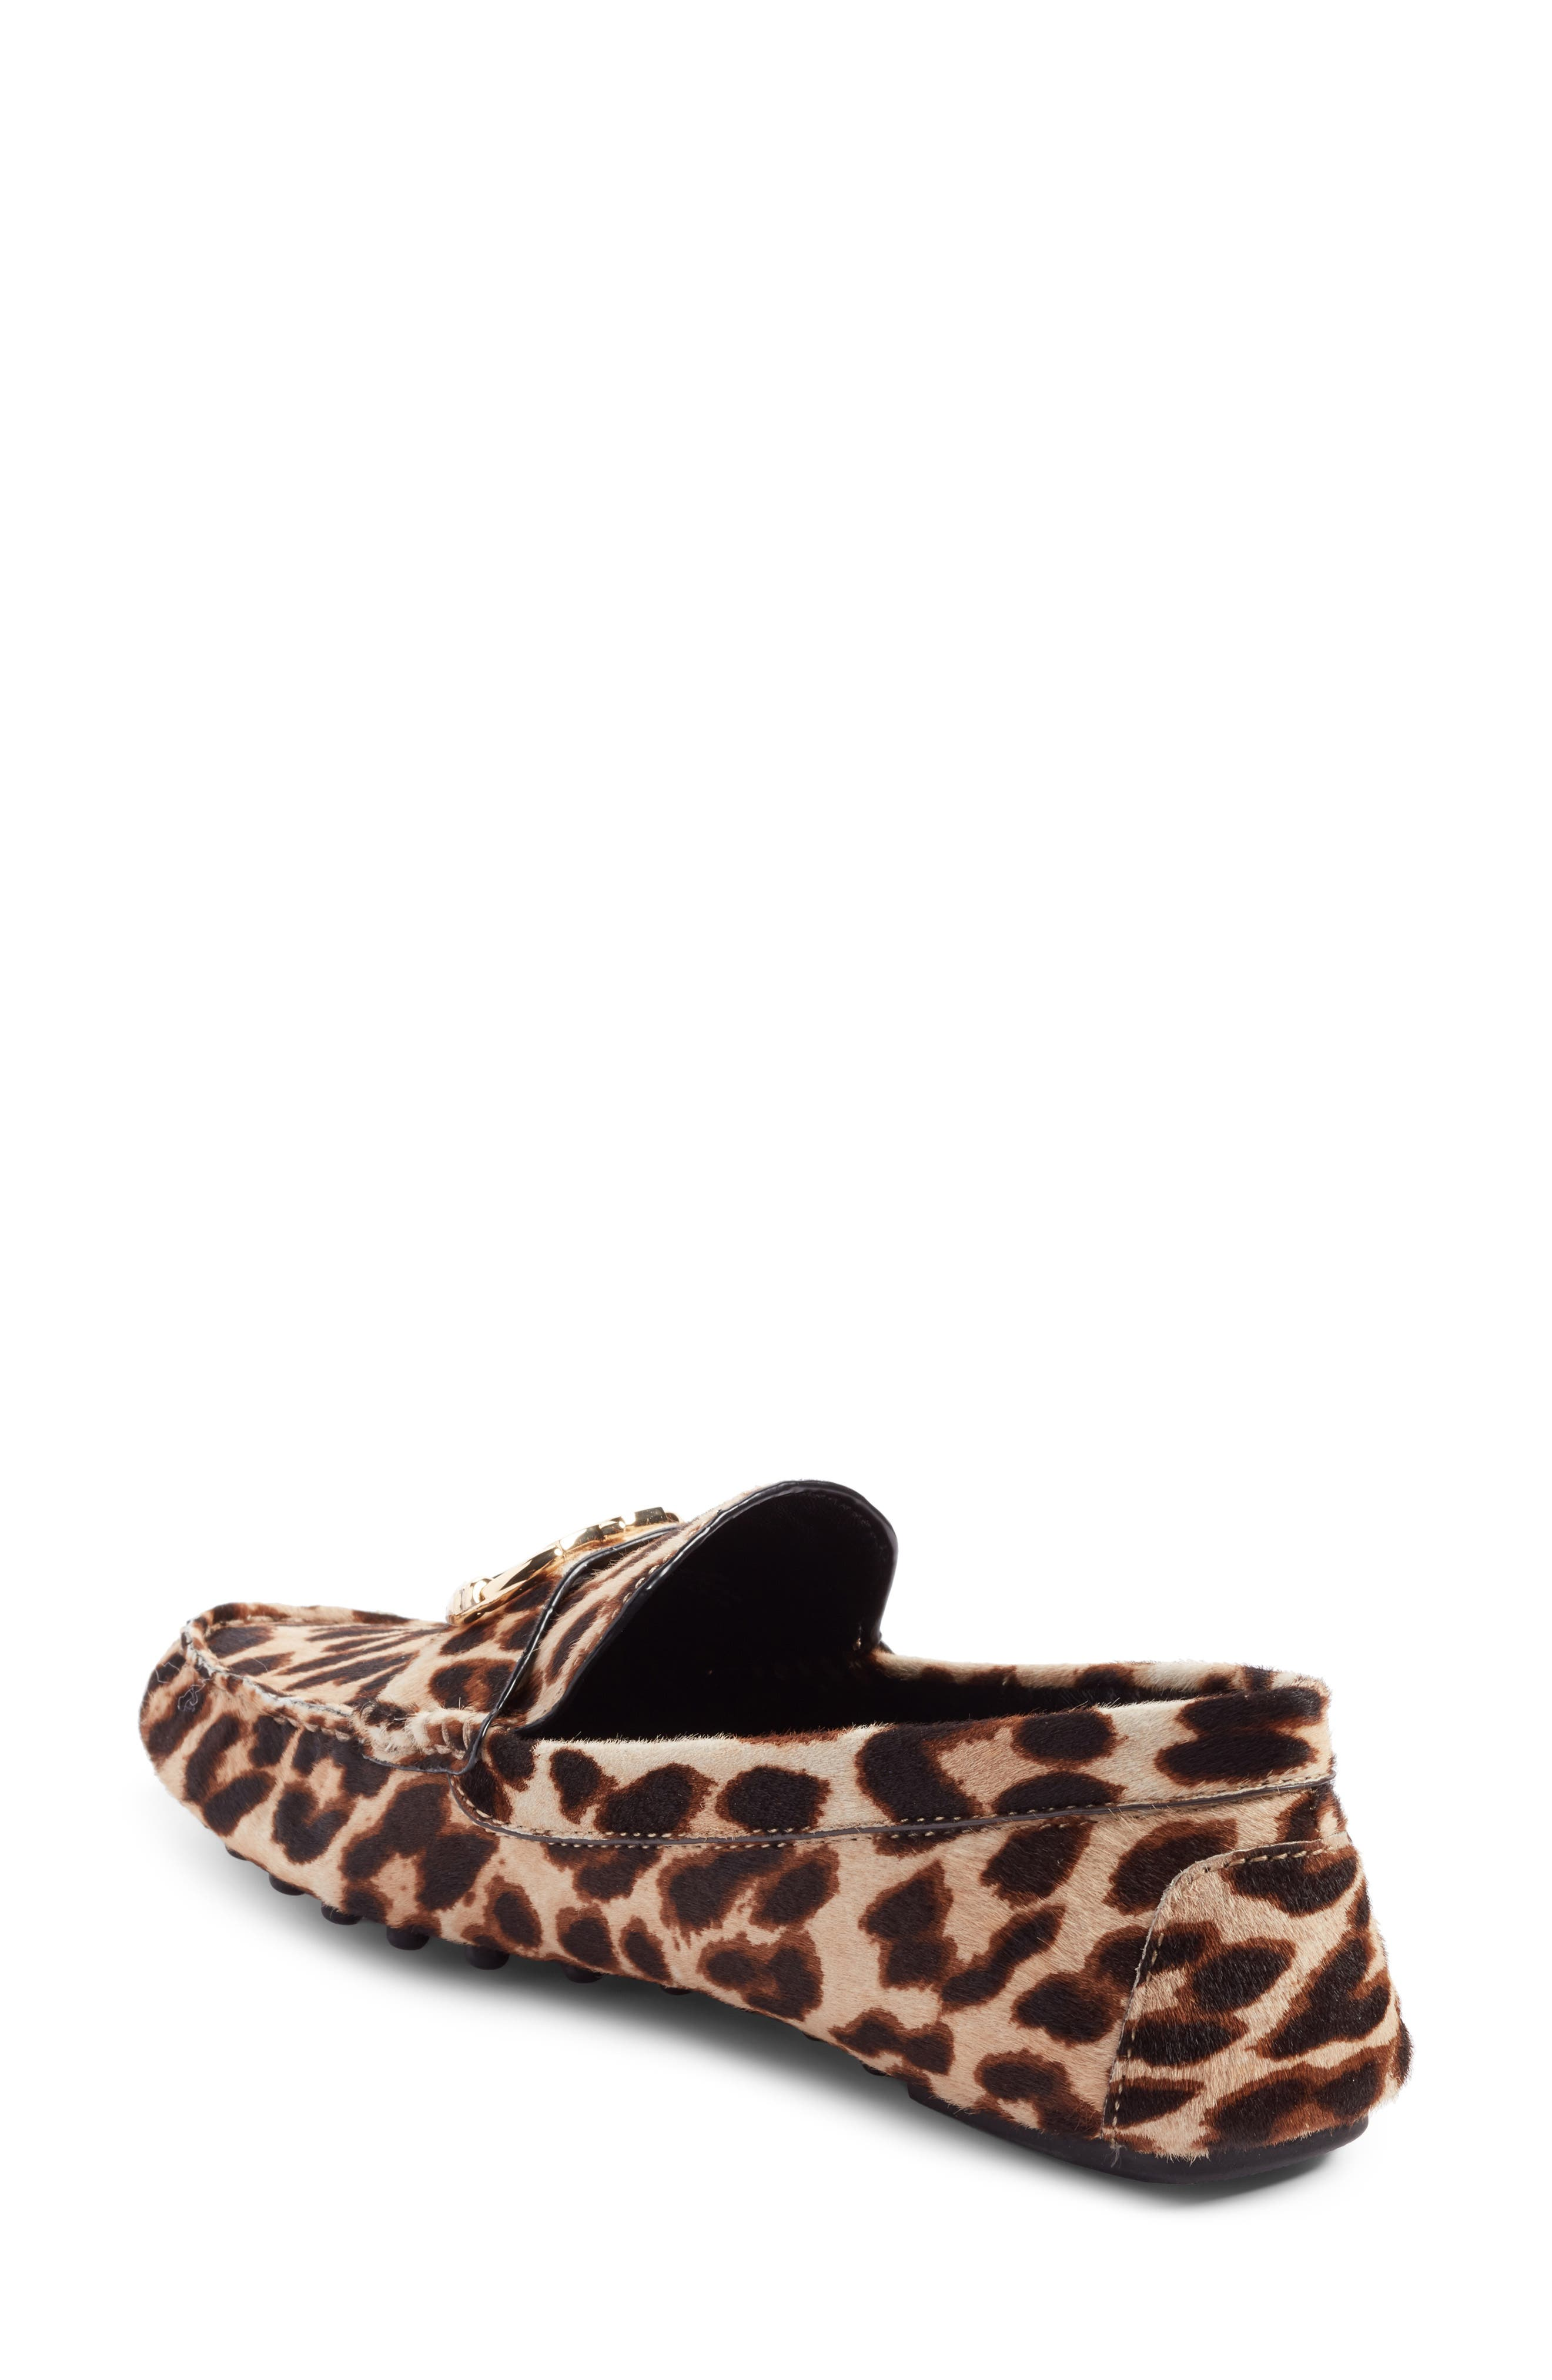 Gemini Driving Loafer,                             Alternate thumbnail 5, color,